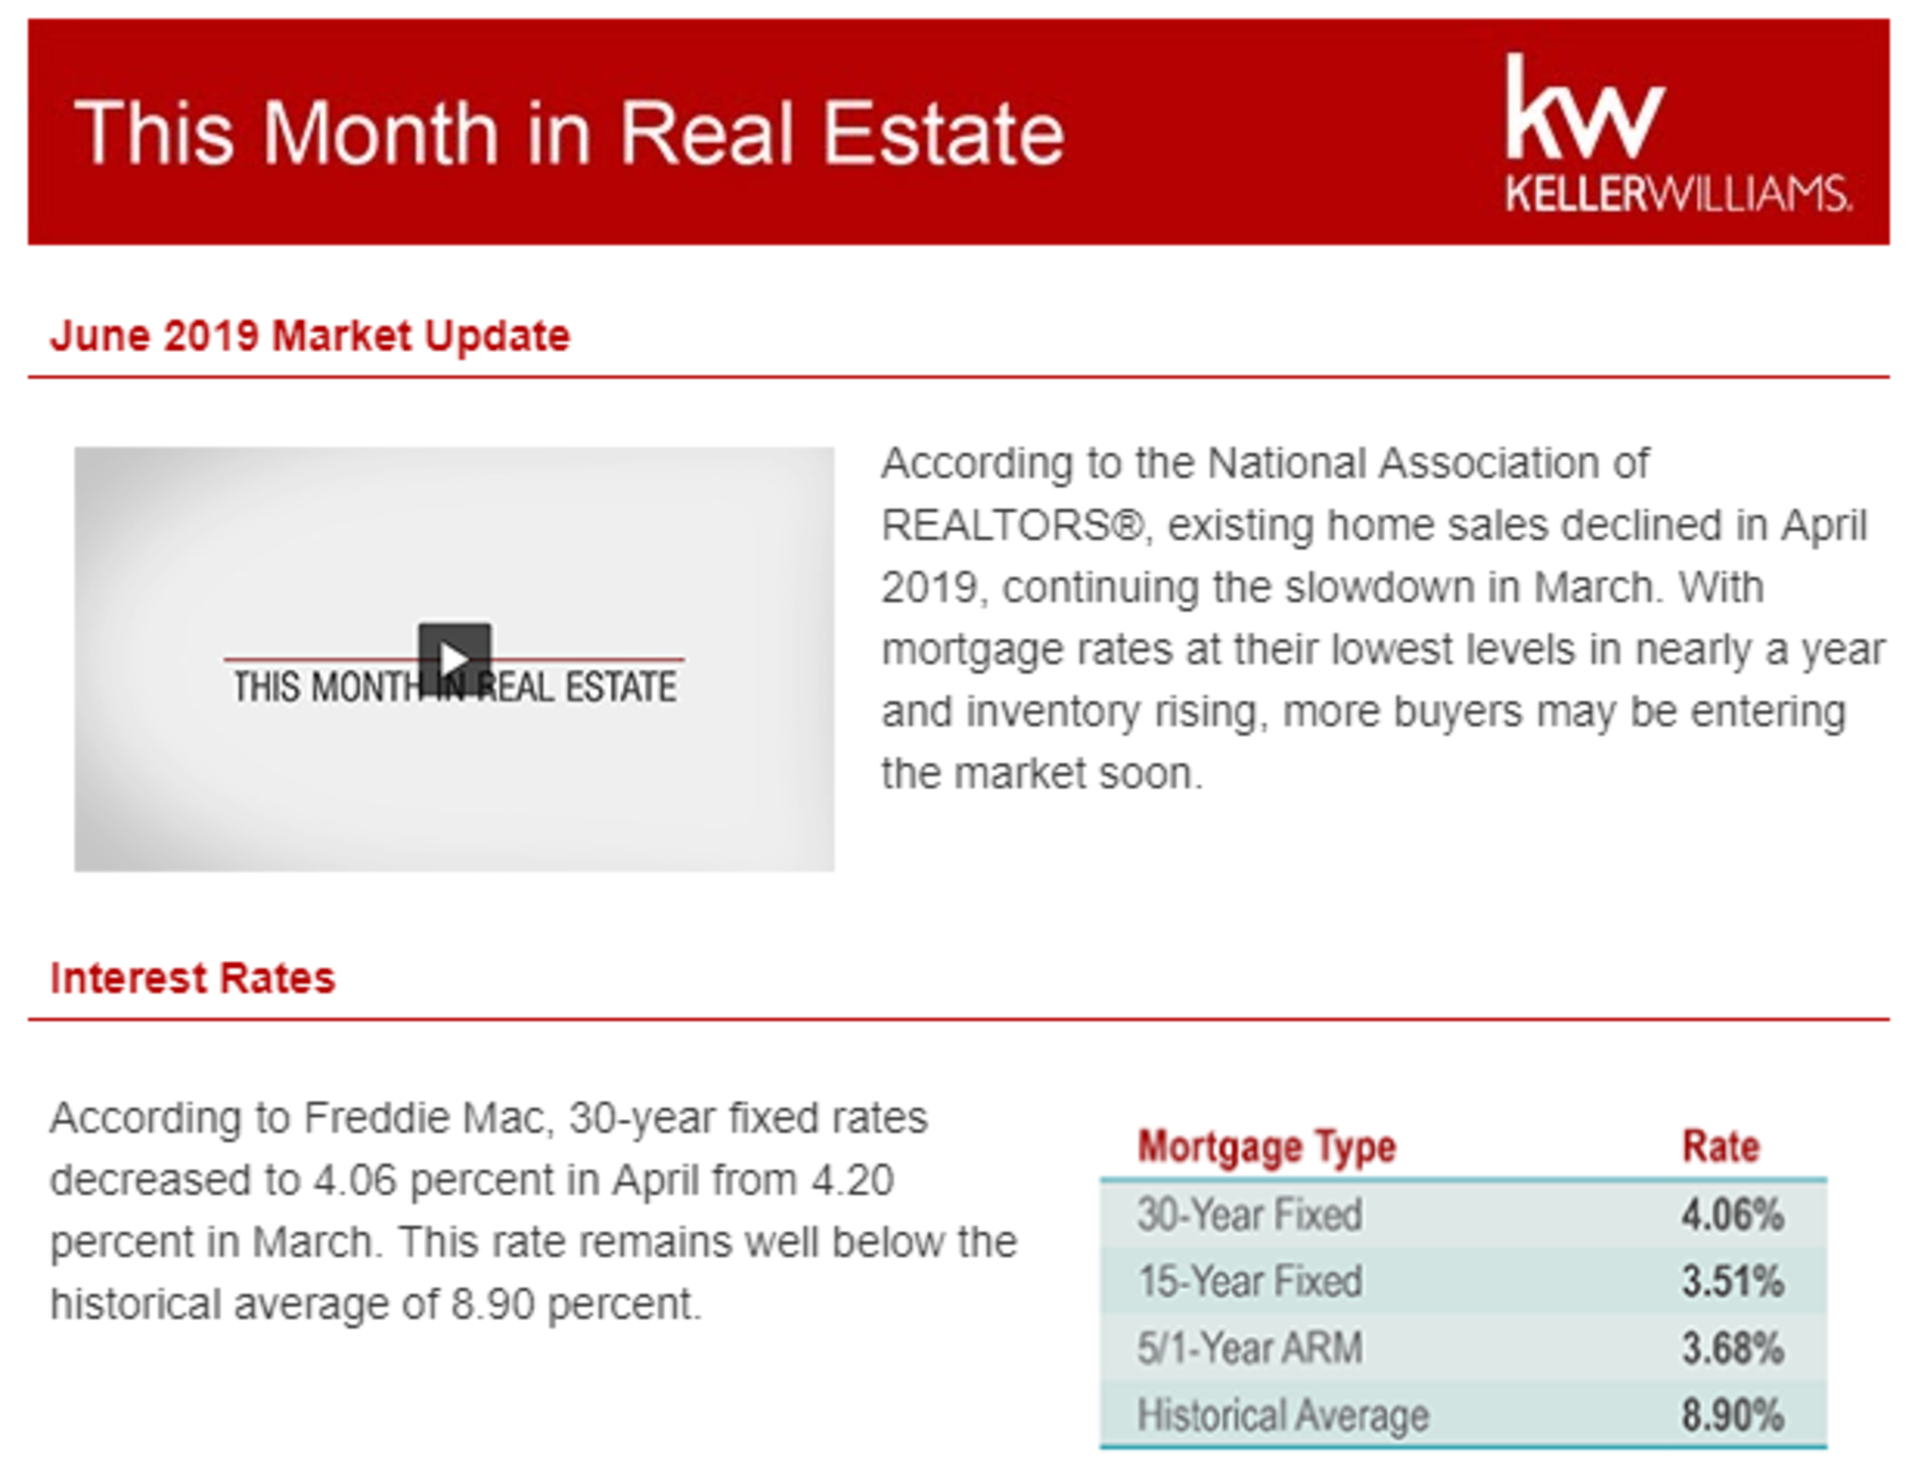 This Month in Real Estate for June 2019